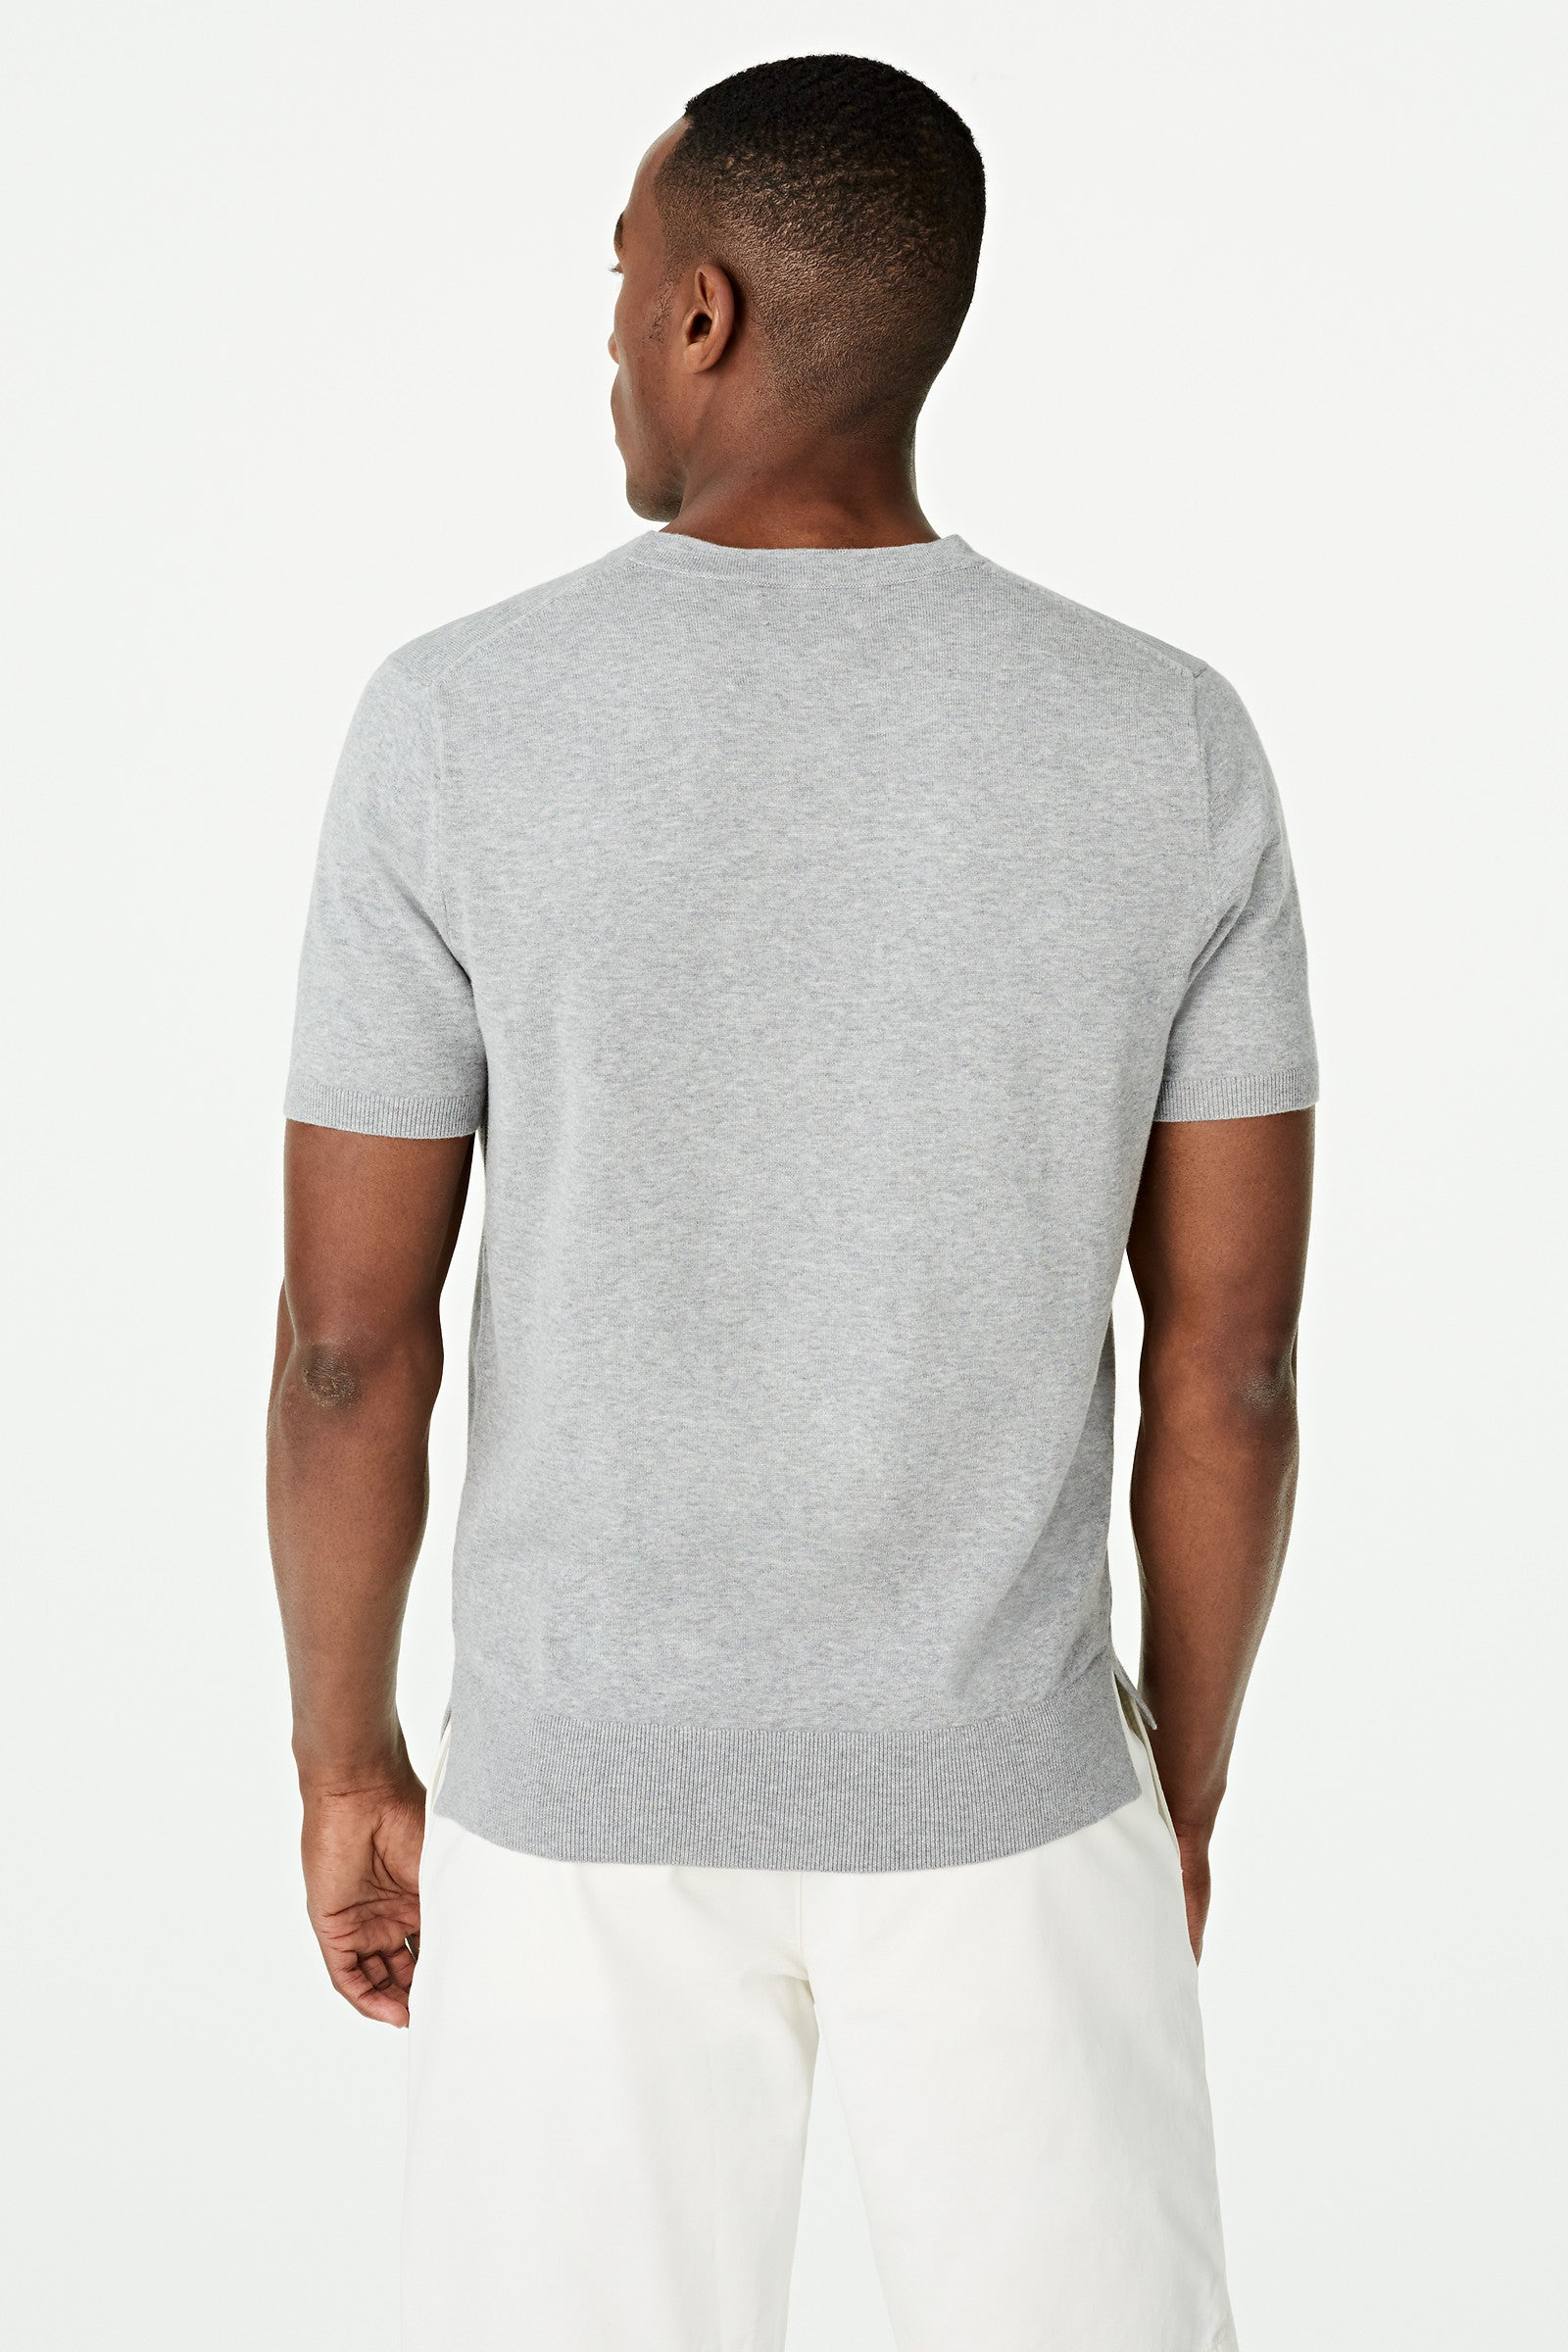 Cotton Crew Neck Sweater Short Sleeve